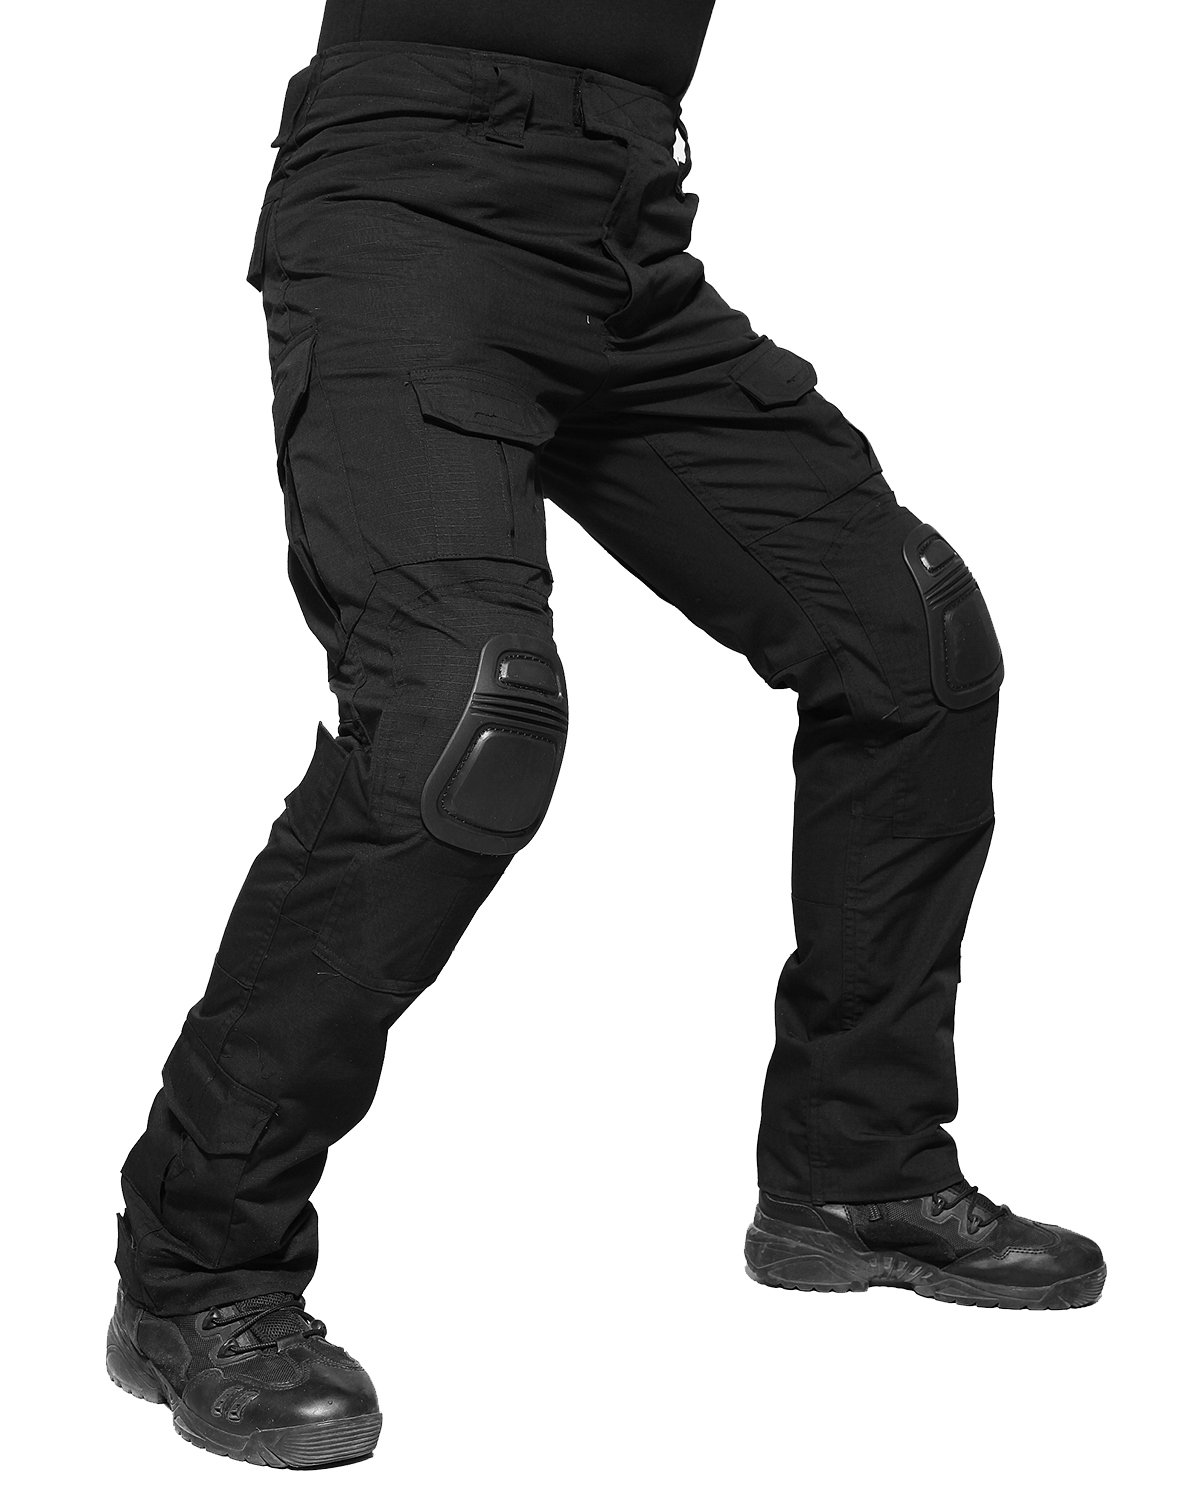 TACVASEN Tactical Ripstop Combat Trousers Airsoft Pants with Knee Pads Black